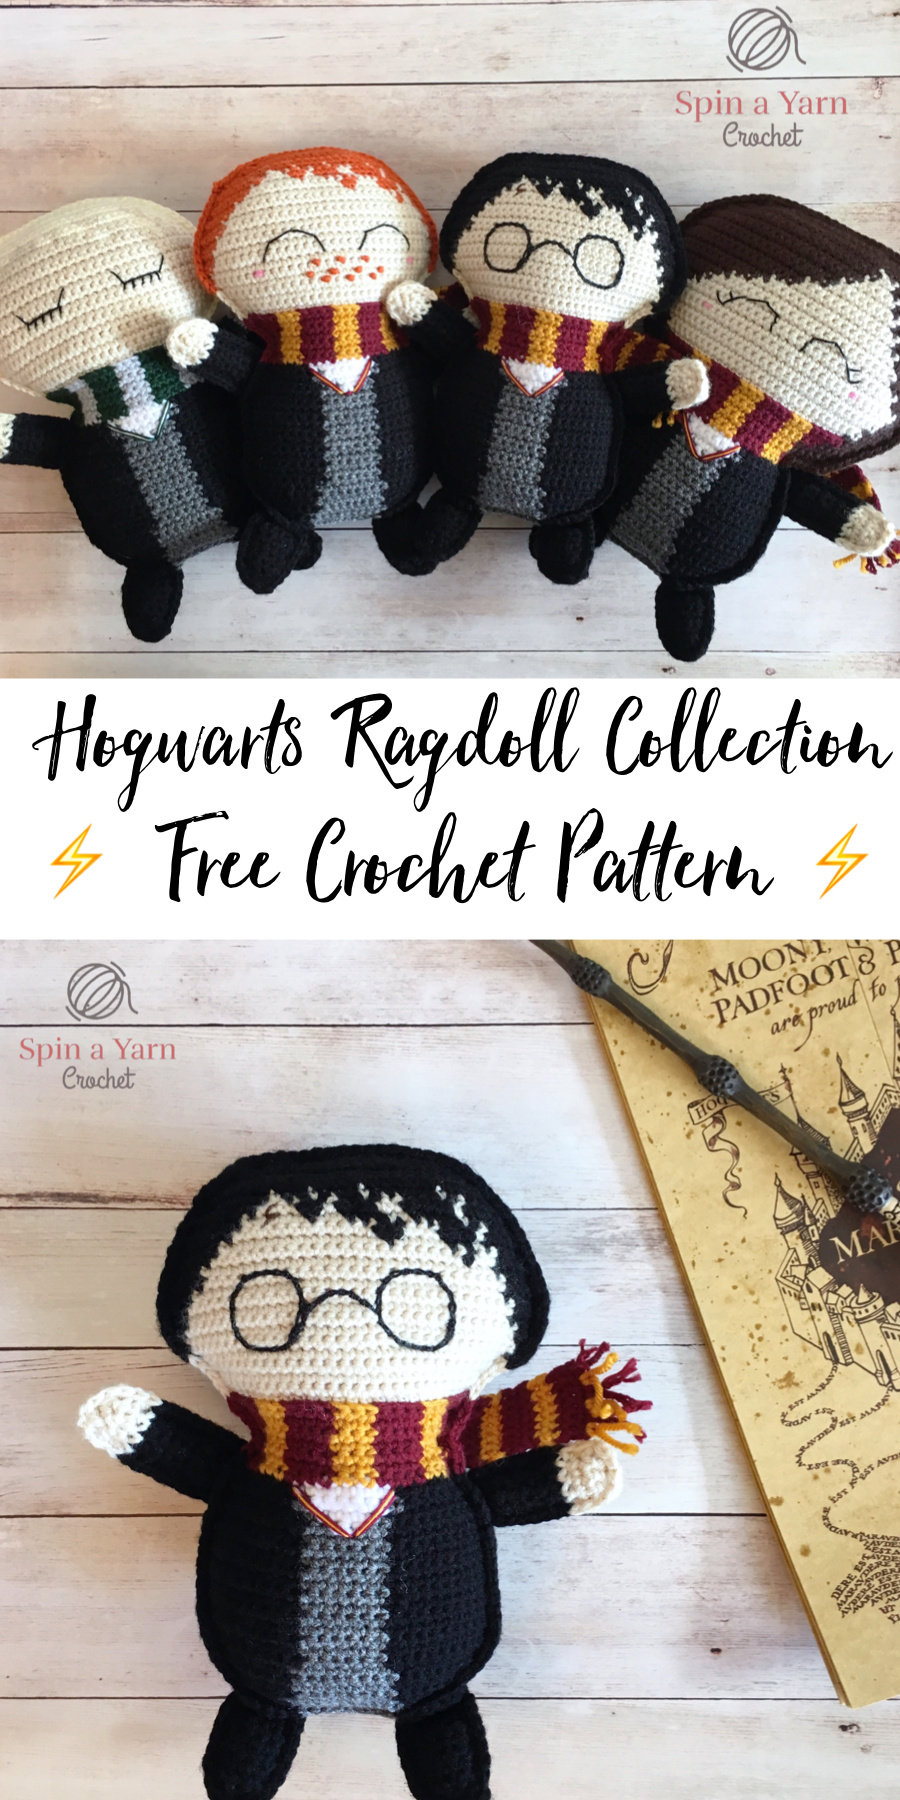 Ragdoll Harry Potter Free Crochet Pattern ⚯͛ - Spin a Yarn Crochet ...